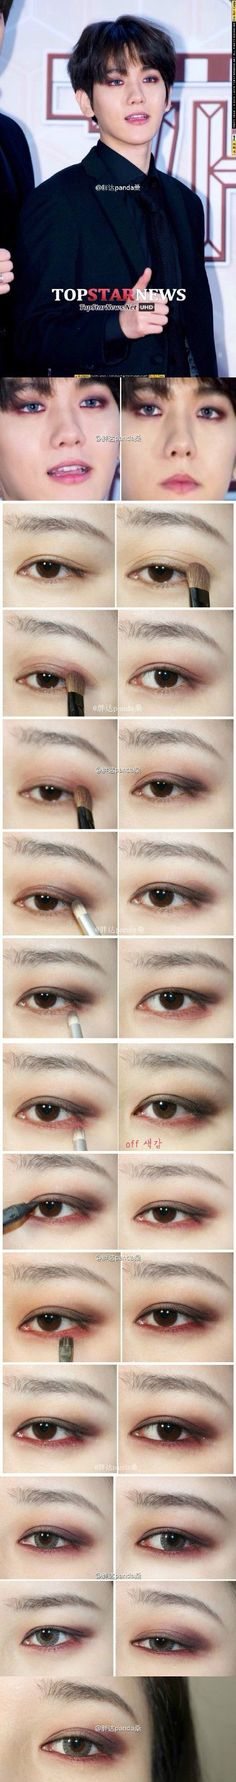 EXO Baekhyun's smoky red brown make up tutorial (cr.1208_sj)